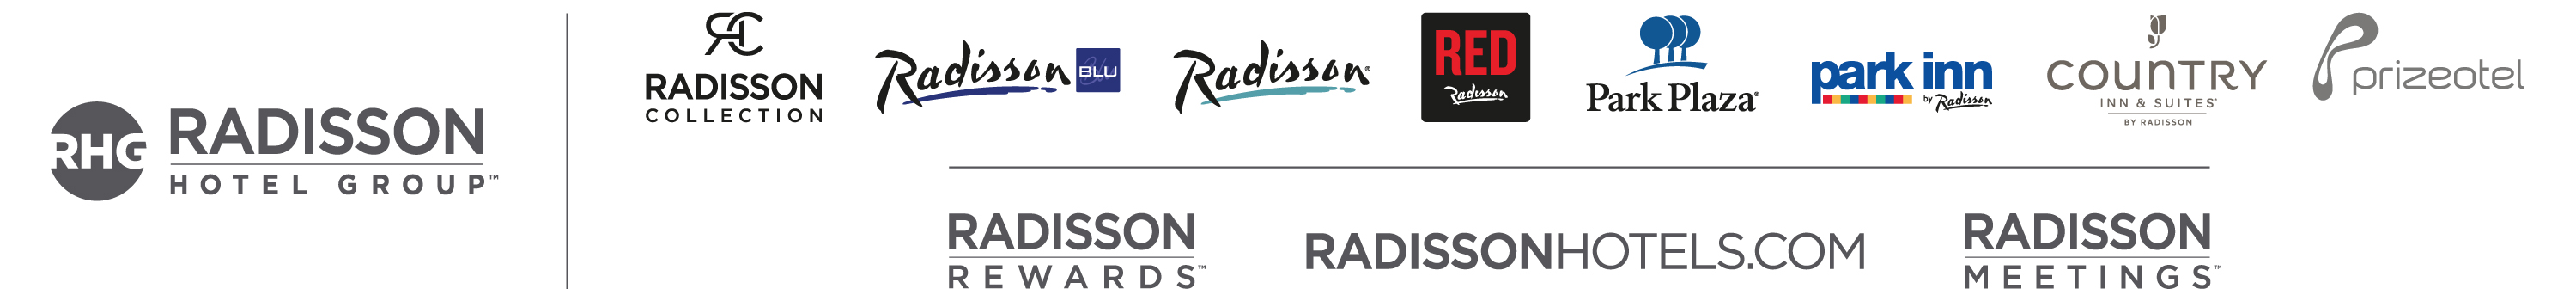 The 'brand equity' of Radisson behind Carlson Rezidor Hotel Group.